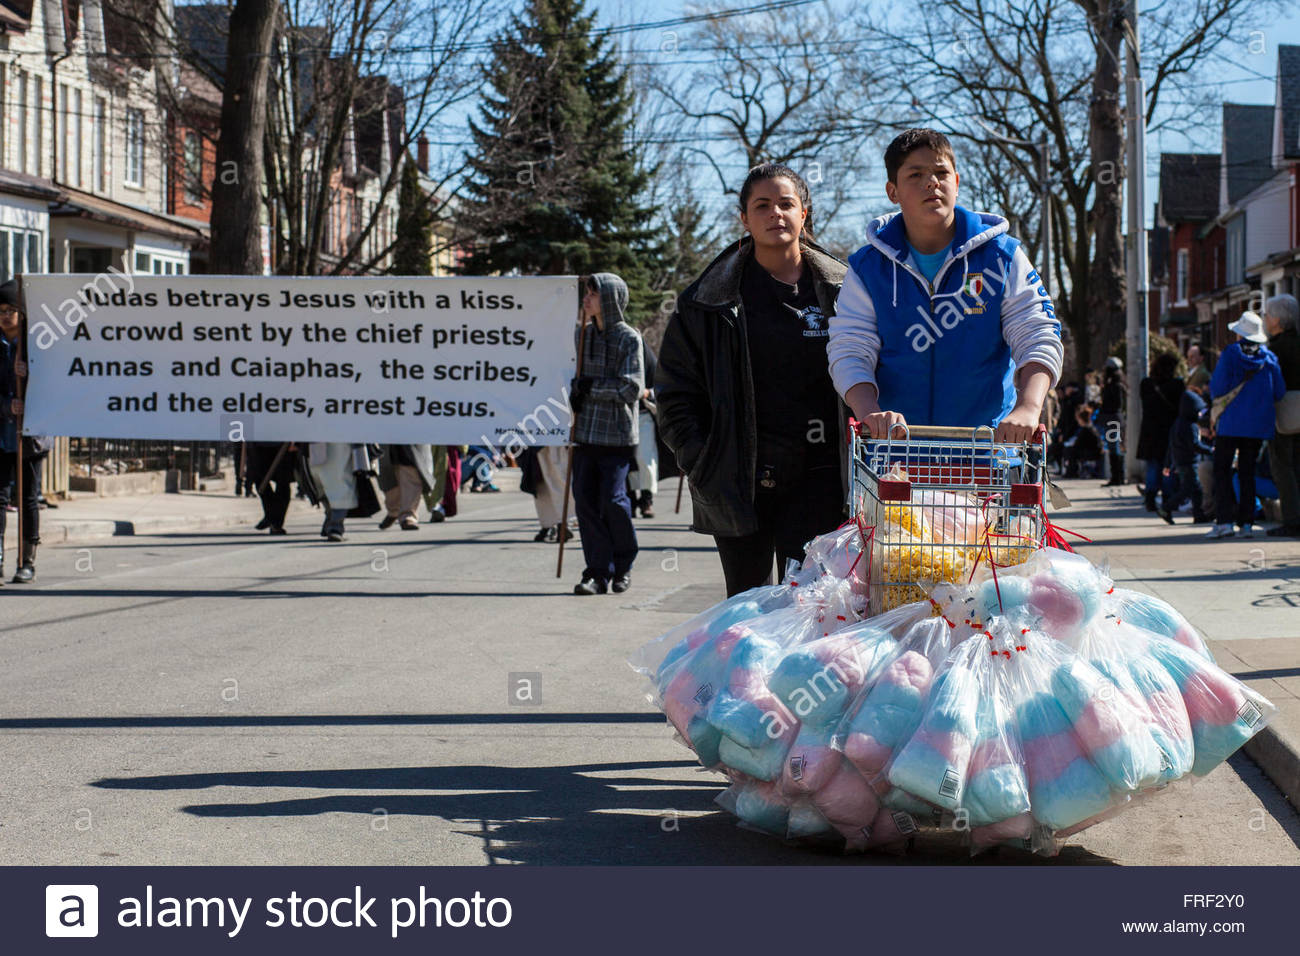 Judas betrays Jesus who is arrested sign, 2 kids selling candy floss, Easter, Stations of the Cross, Good Friday - Stock Image